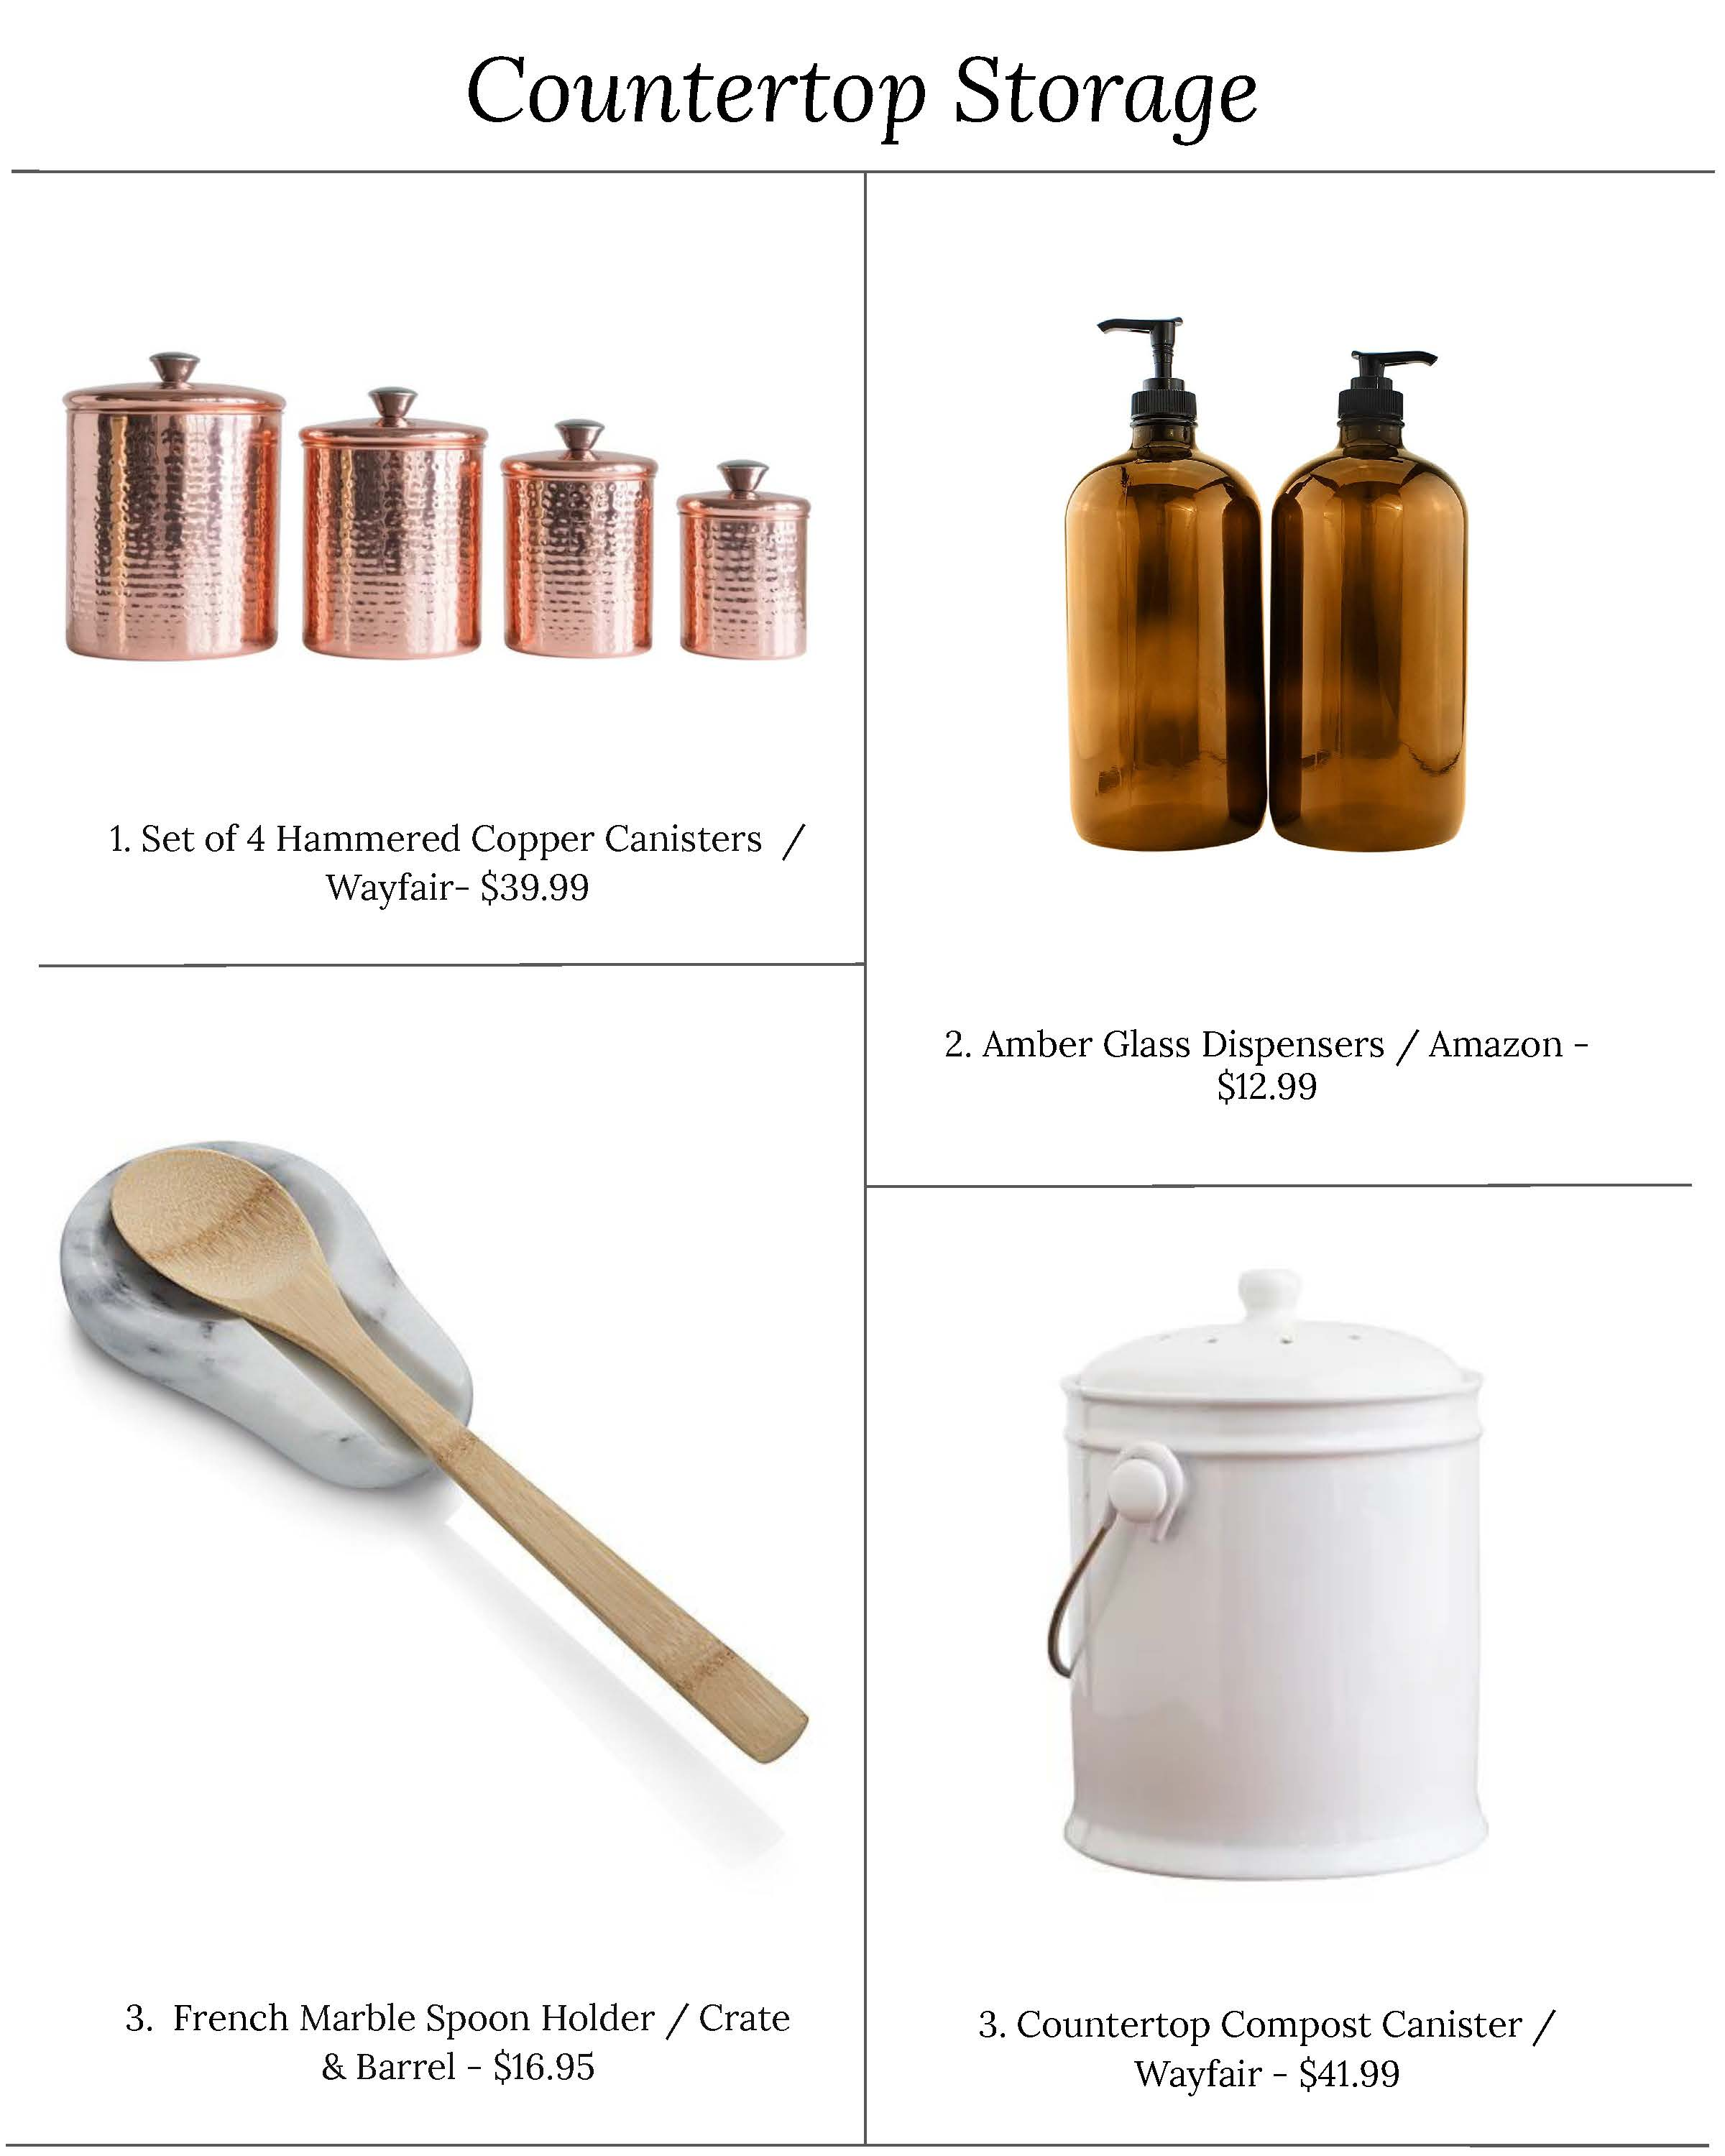 Kitchen Tools_Countertop_Storage_LaurenLCaron.jpg